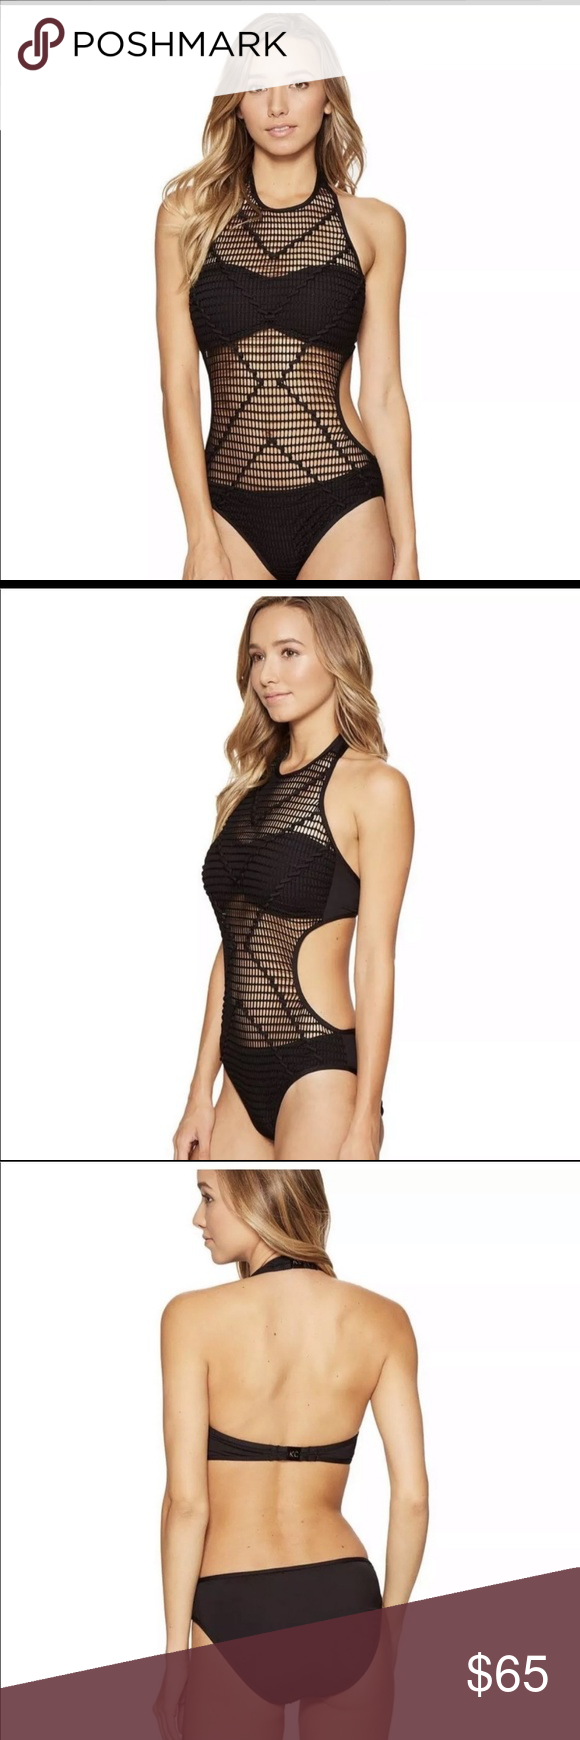 07fd75a756e59 Kenneth Cole wrapped in love Monokini Sexy nwt monokini with sexy cut out  and mesh overlay and cutout! Hygienic liner and tags. Super sexy for this  summer!